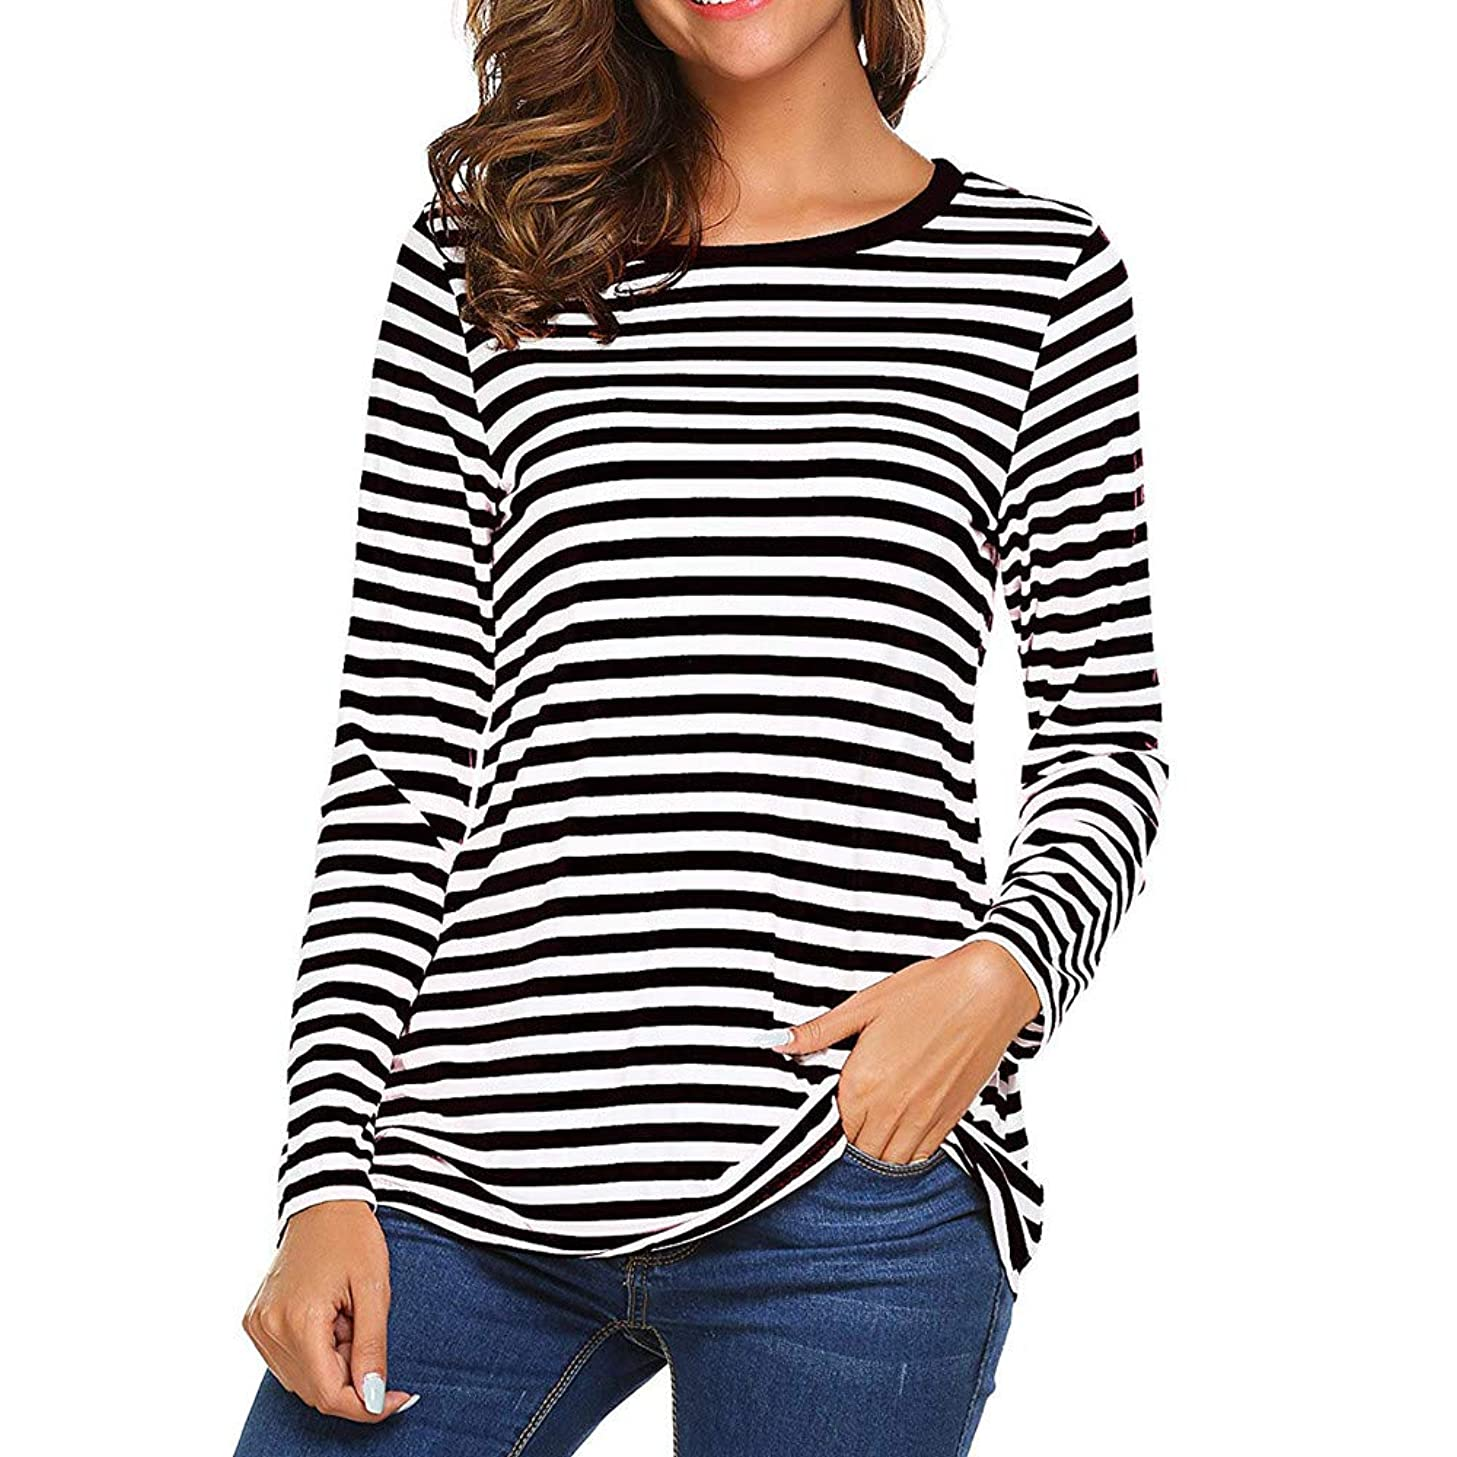 LISTHA Long Sleeve Striped Tops for Women Round Neck T-Shirt Casual Blouses Pullover